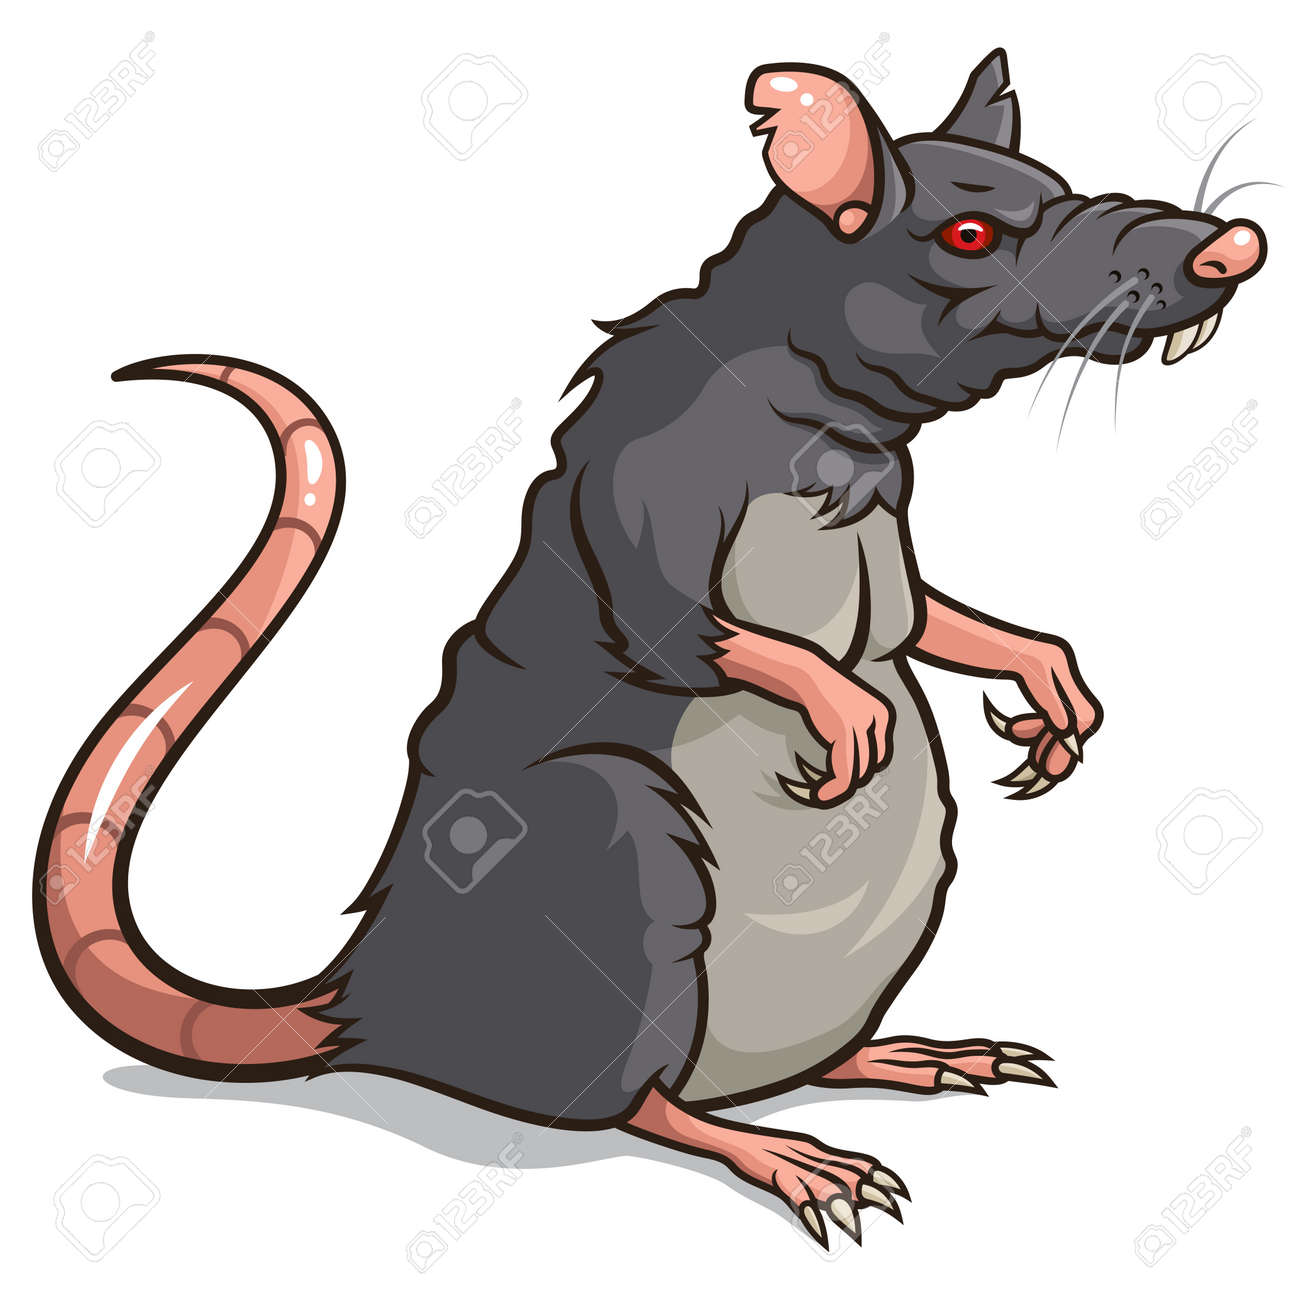 illustration of a Rat isolated on a white background - 29494150